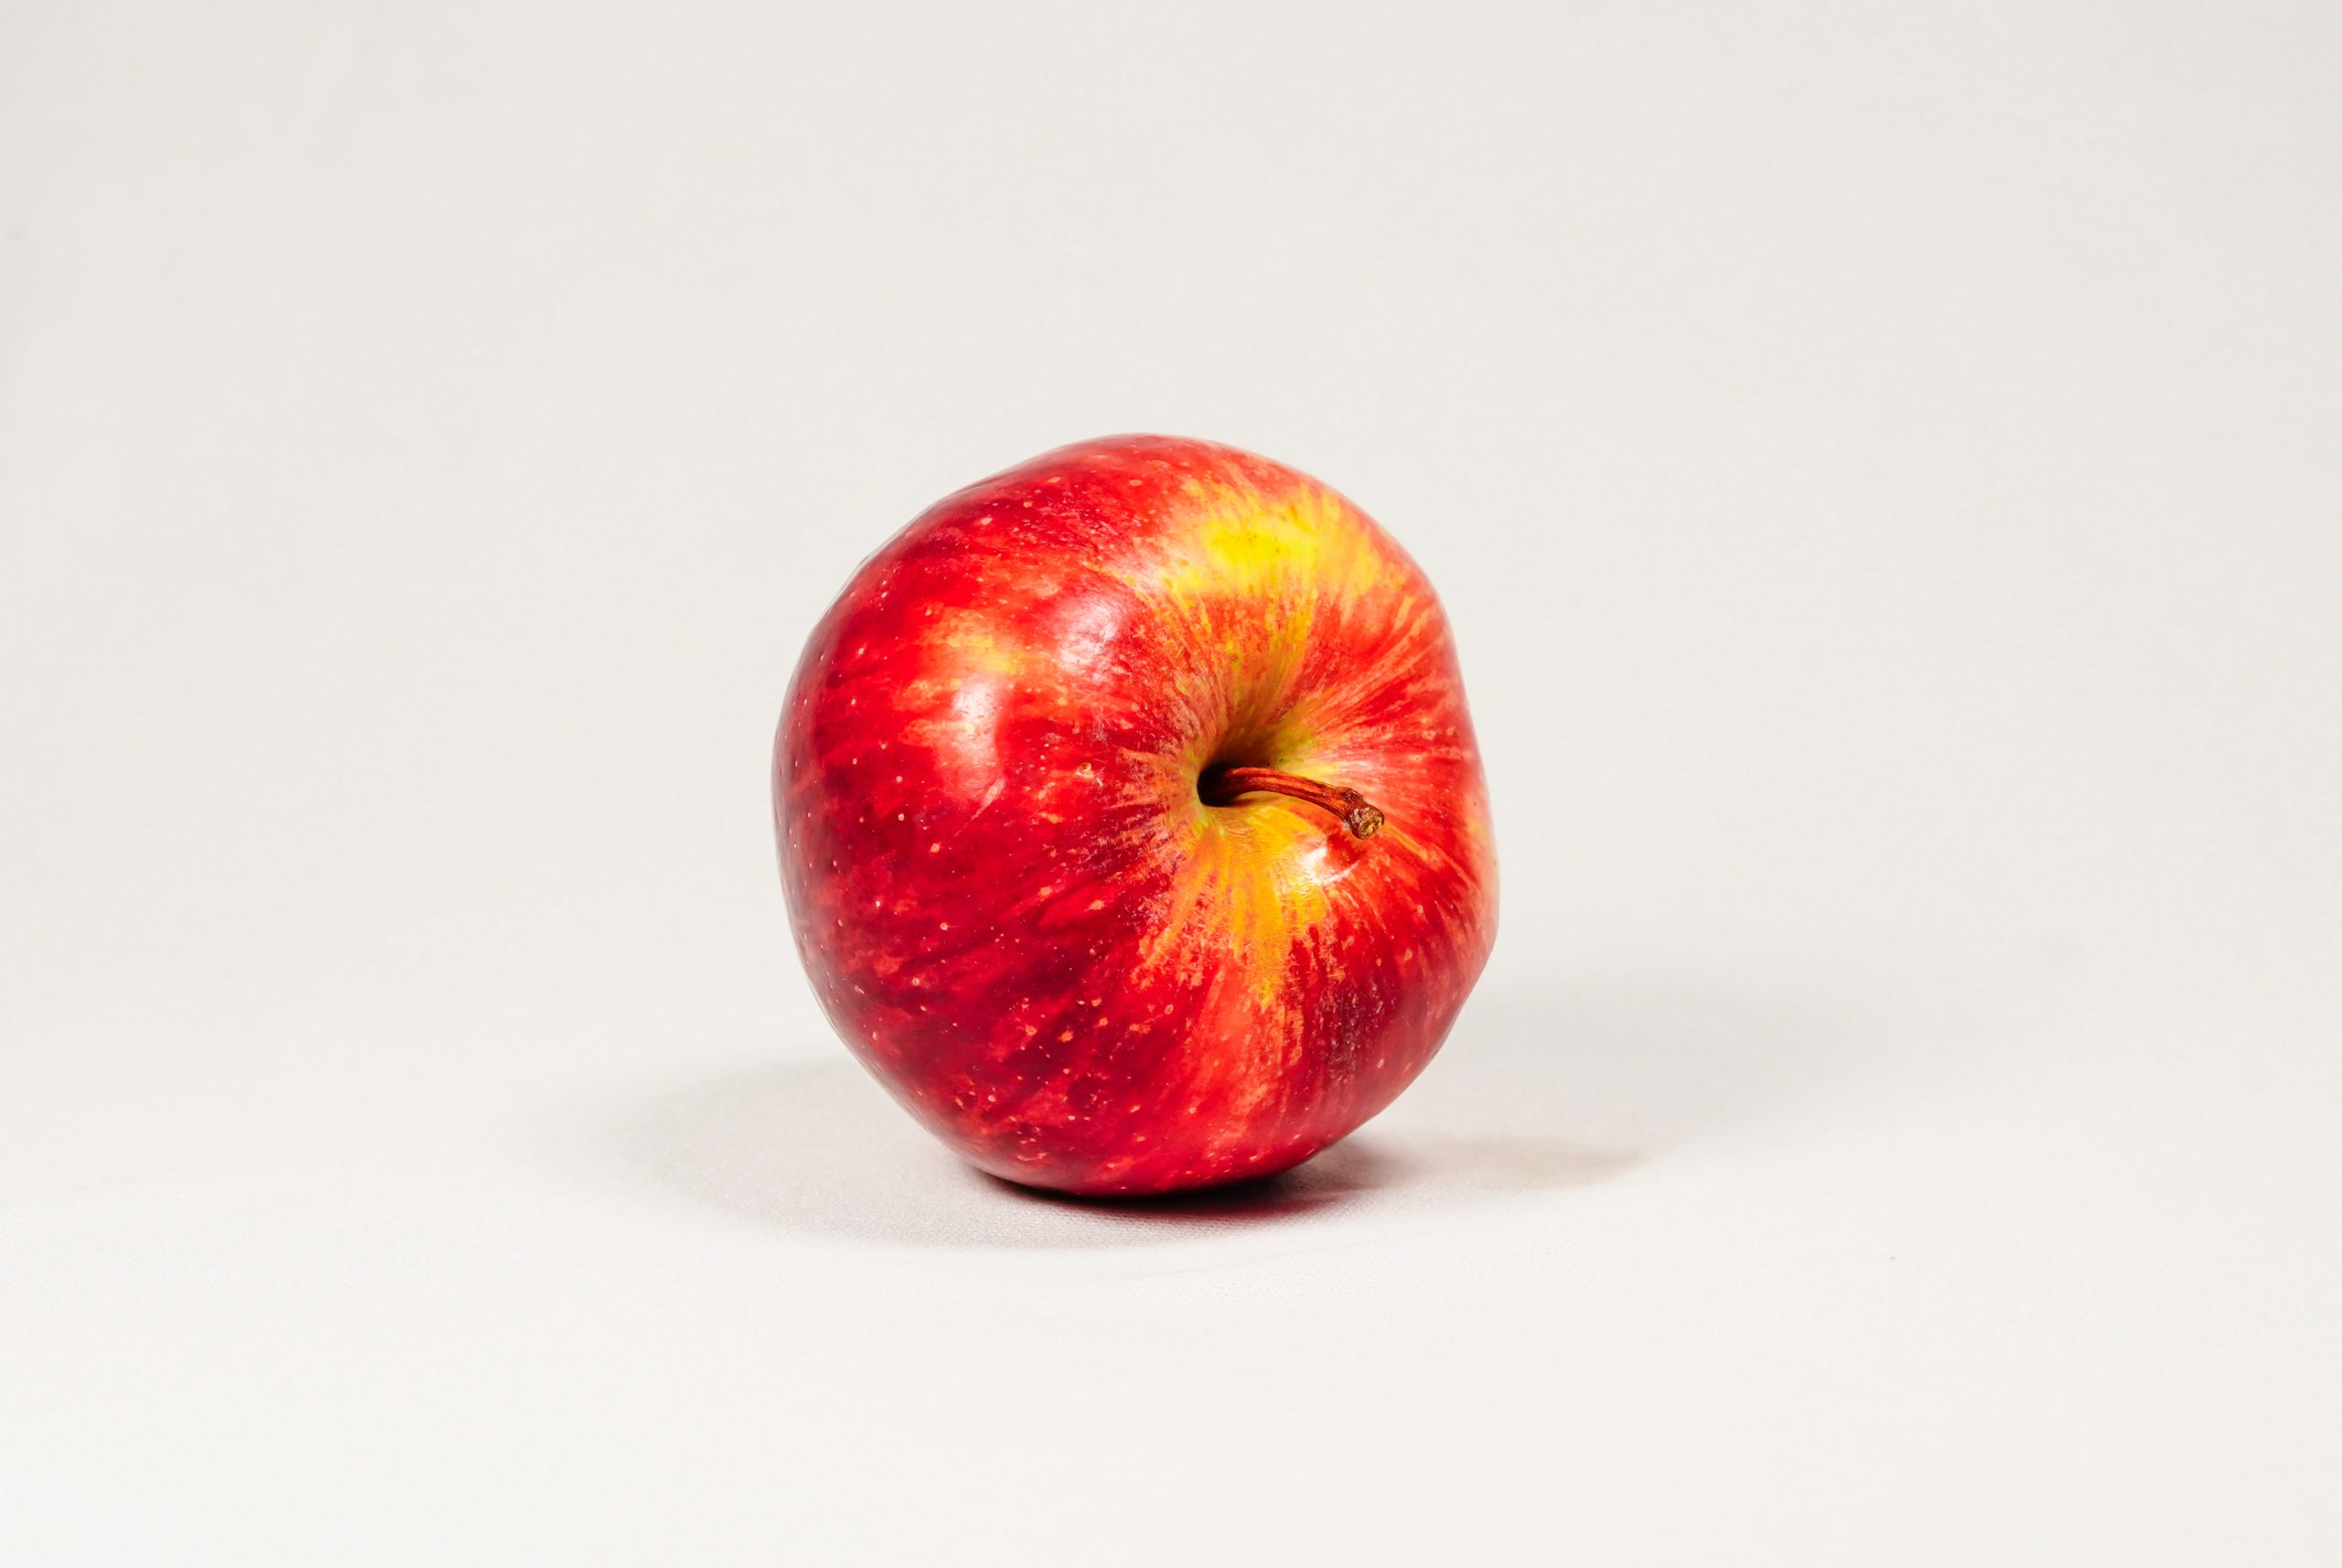 A fresh and juicy apple